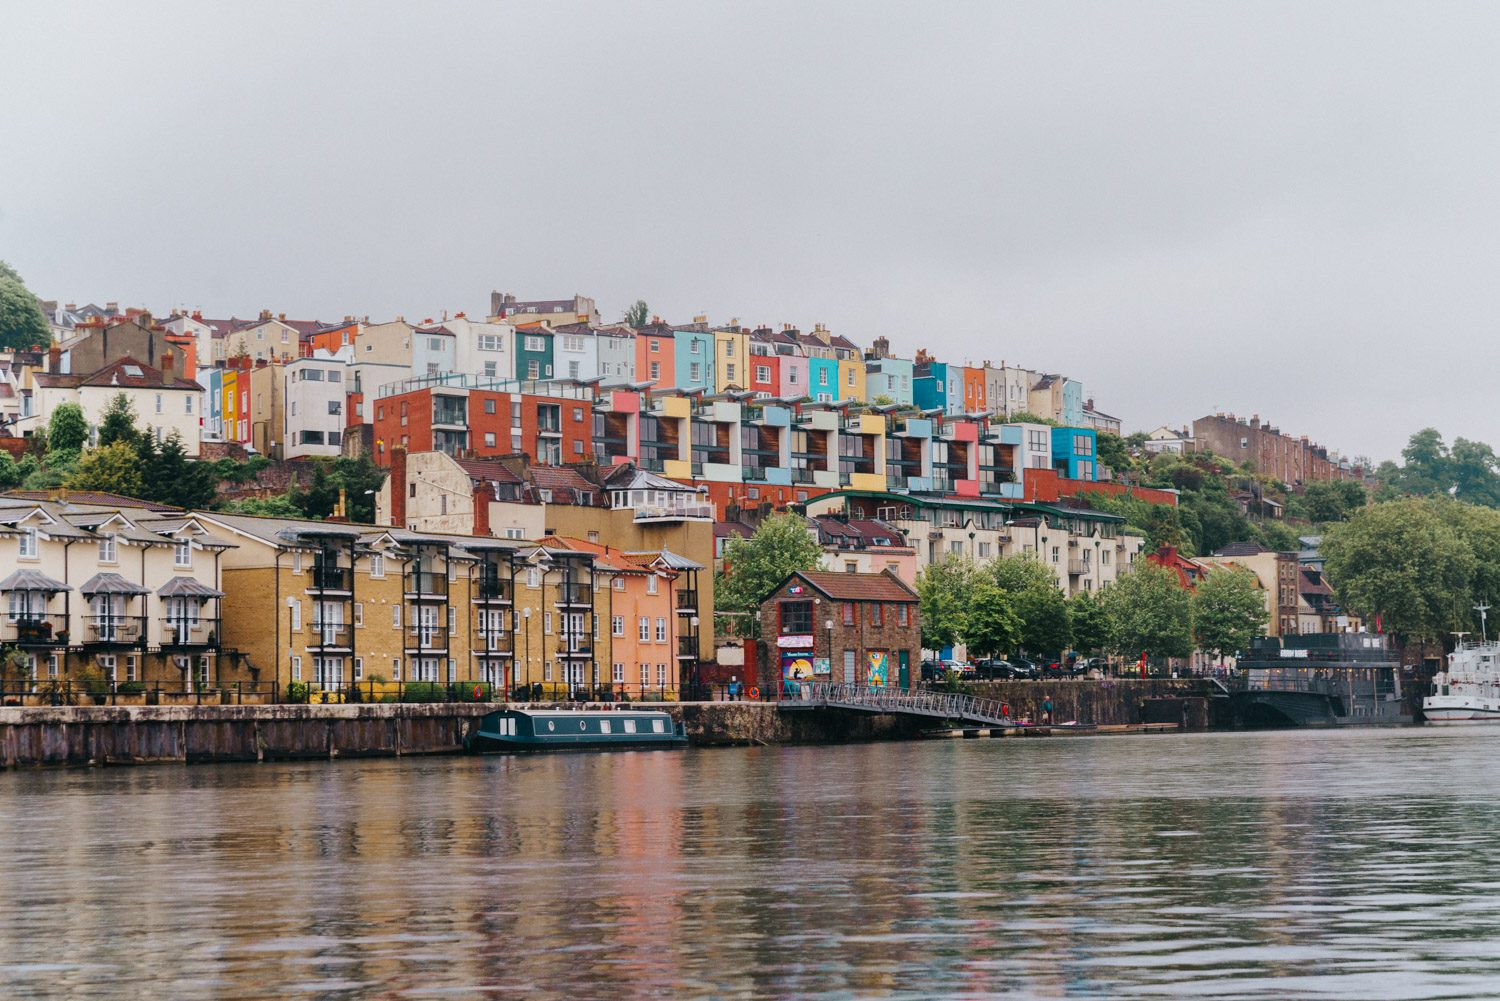 Bristol Harbour | Things to do in Bristol, England - A Guide to Bristol